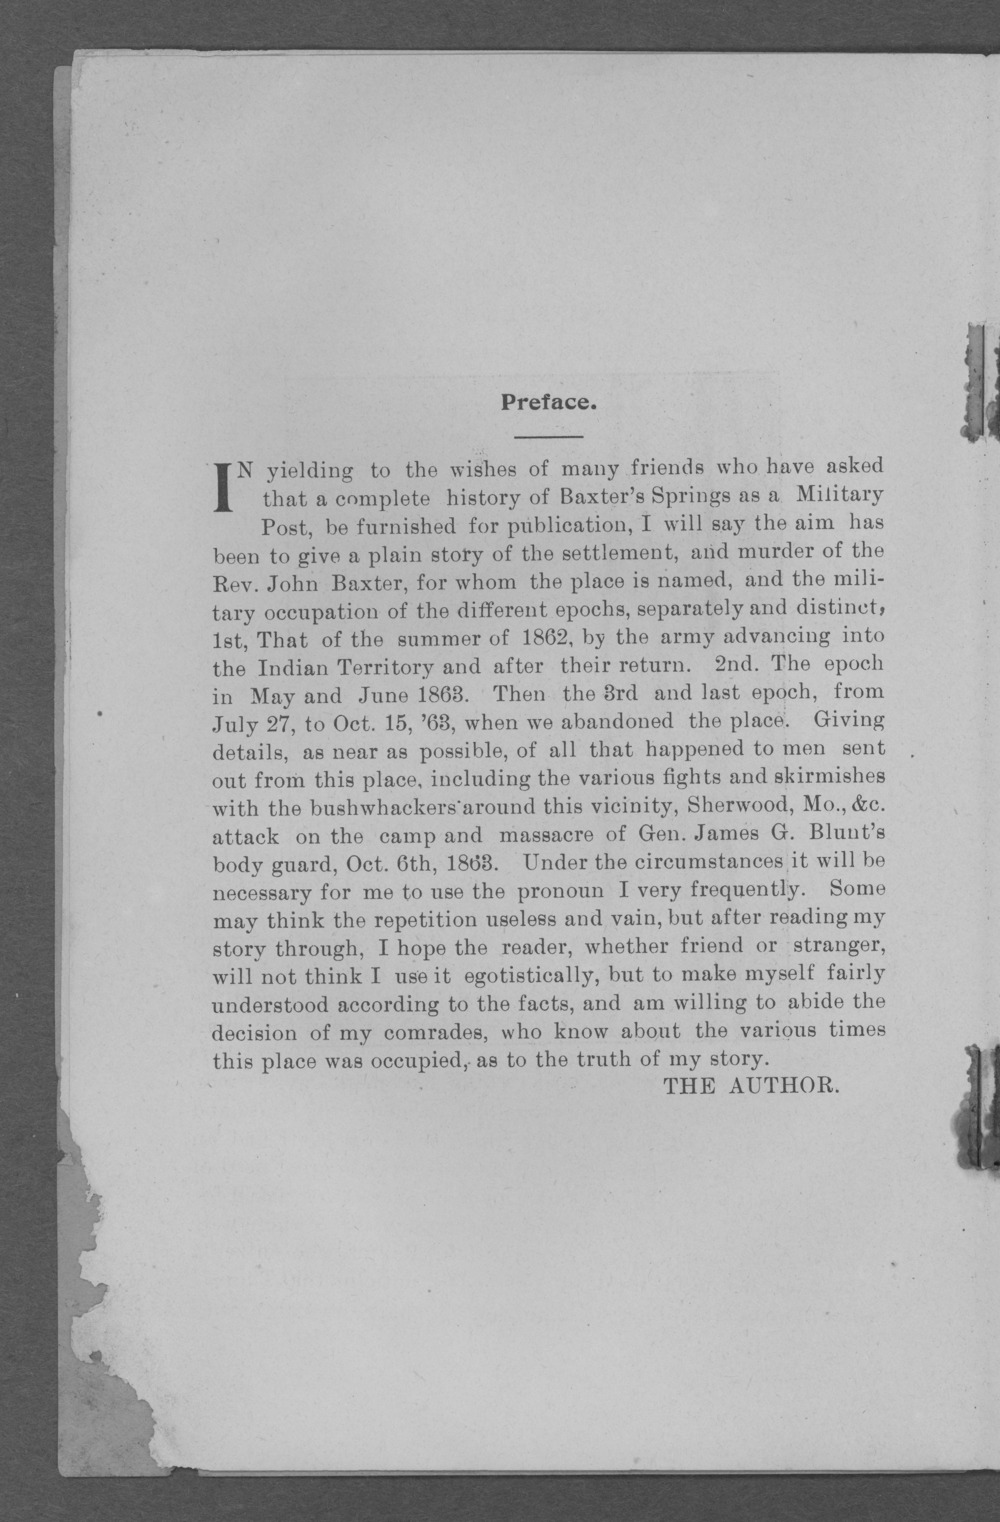 Baxter Springs as a military post - Preface